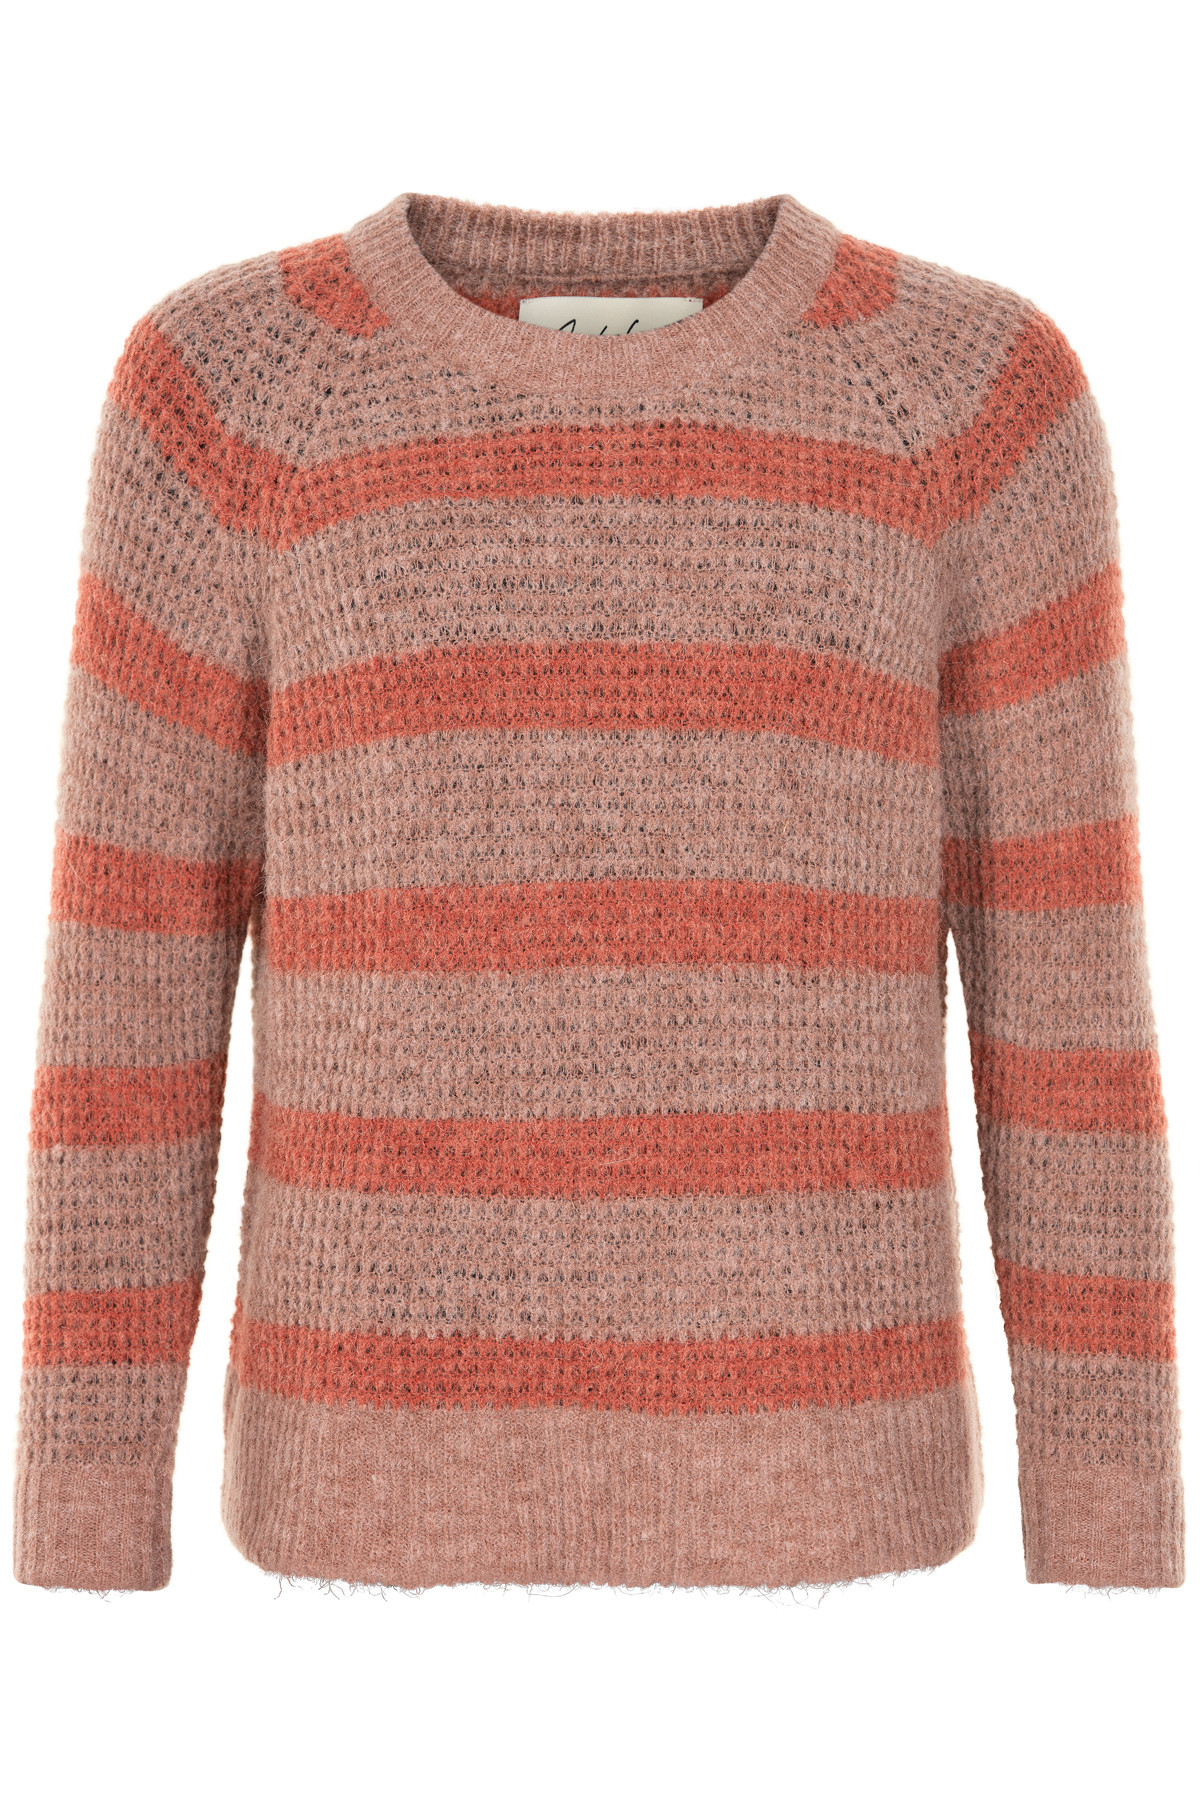 Image of   AND LESS BAMBINA PULLOVER 5419202 (Burlwood, L)